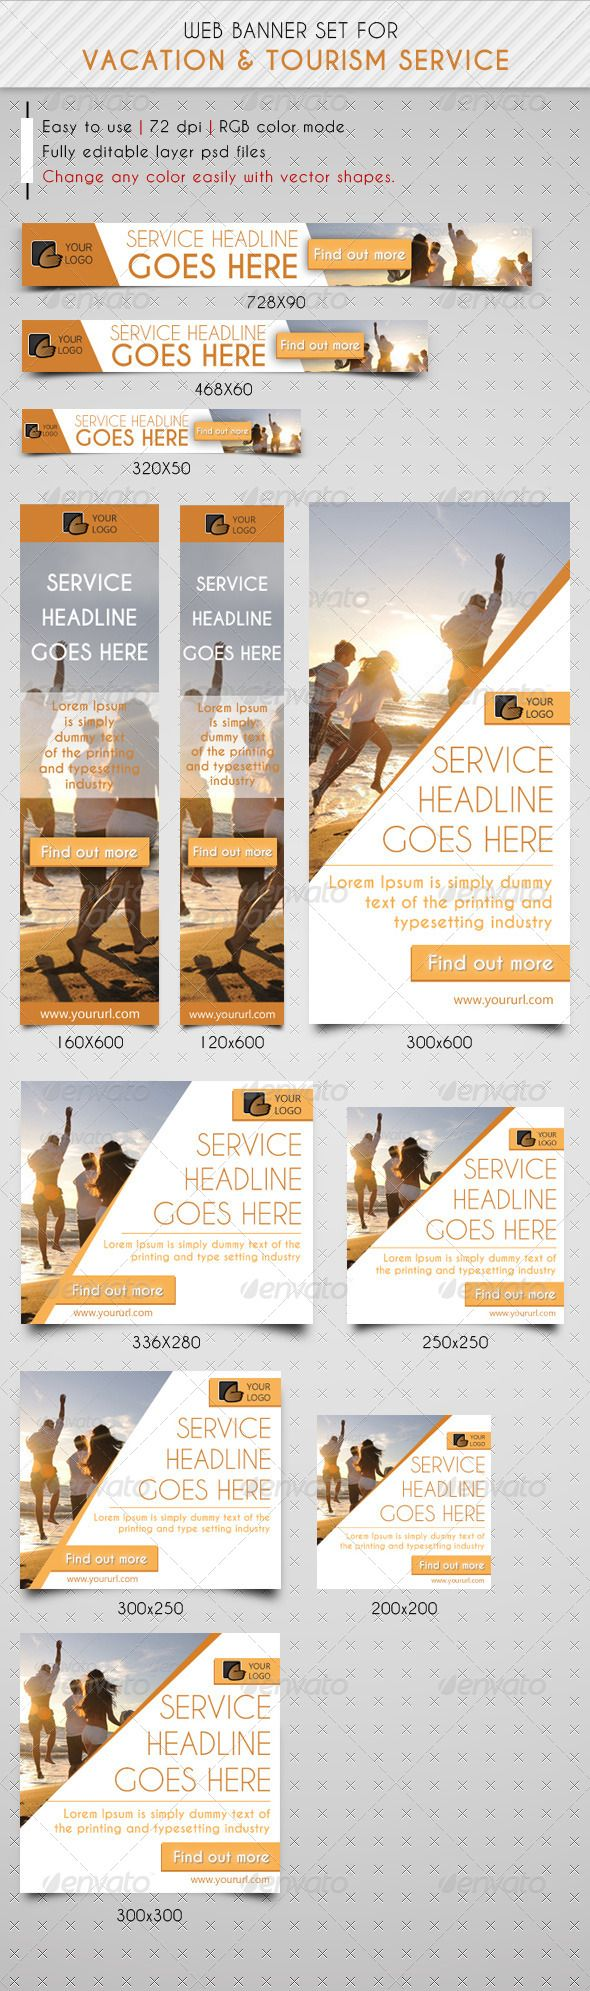 Travel & Vacation Web Banner Ads - Banners & Ads Web Elements